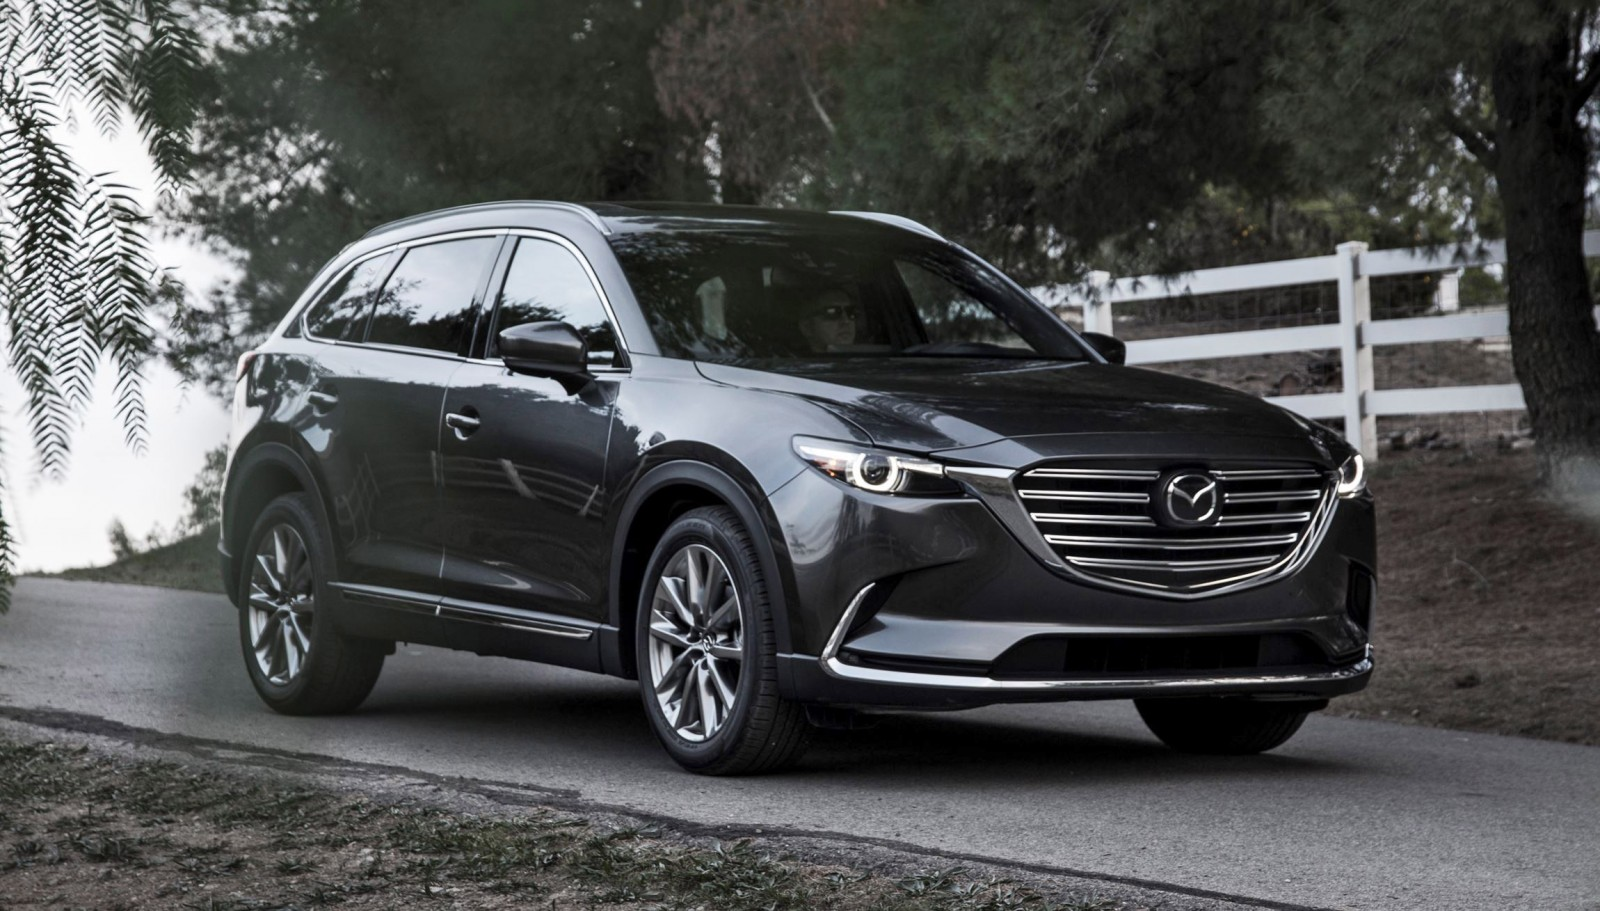 2017 mazda cx 9 revealed gorgeous redesign lux cabin and. Black Bedroom Furniture Sets. Home Design Ideas